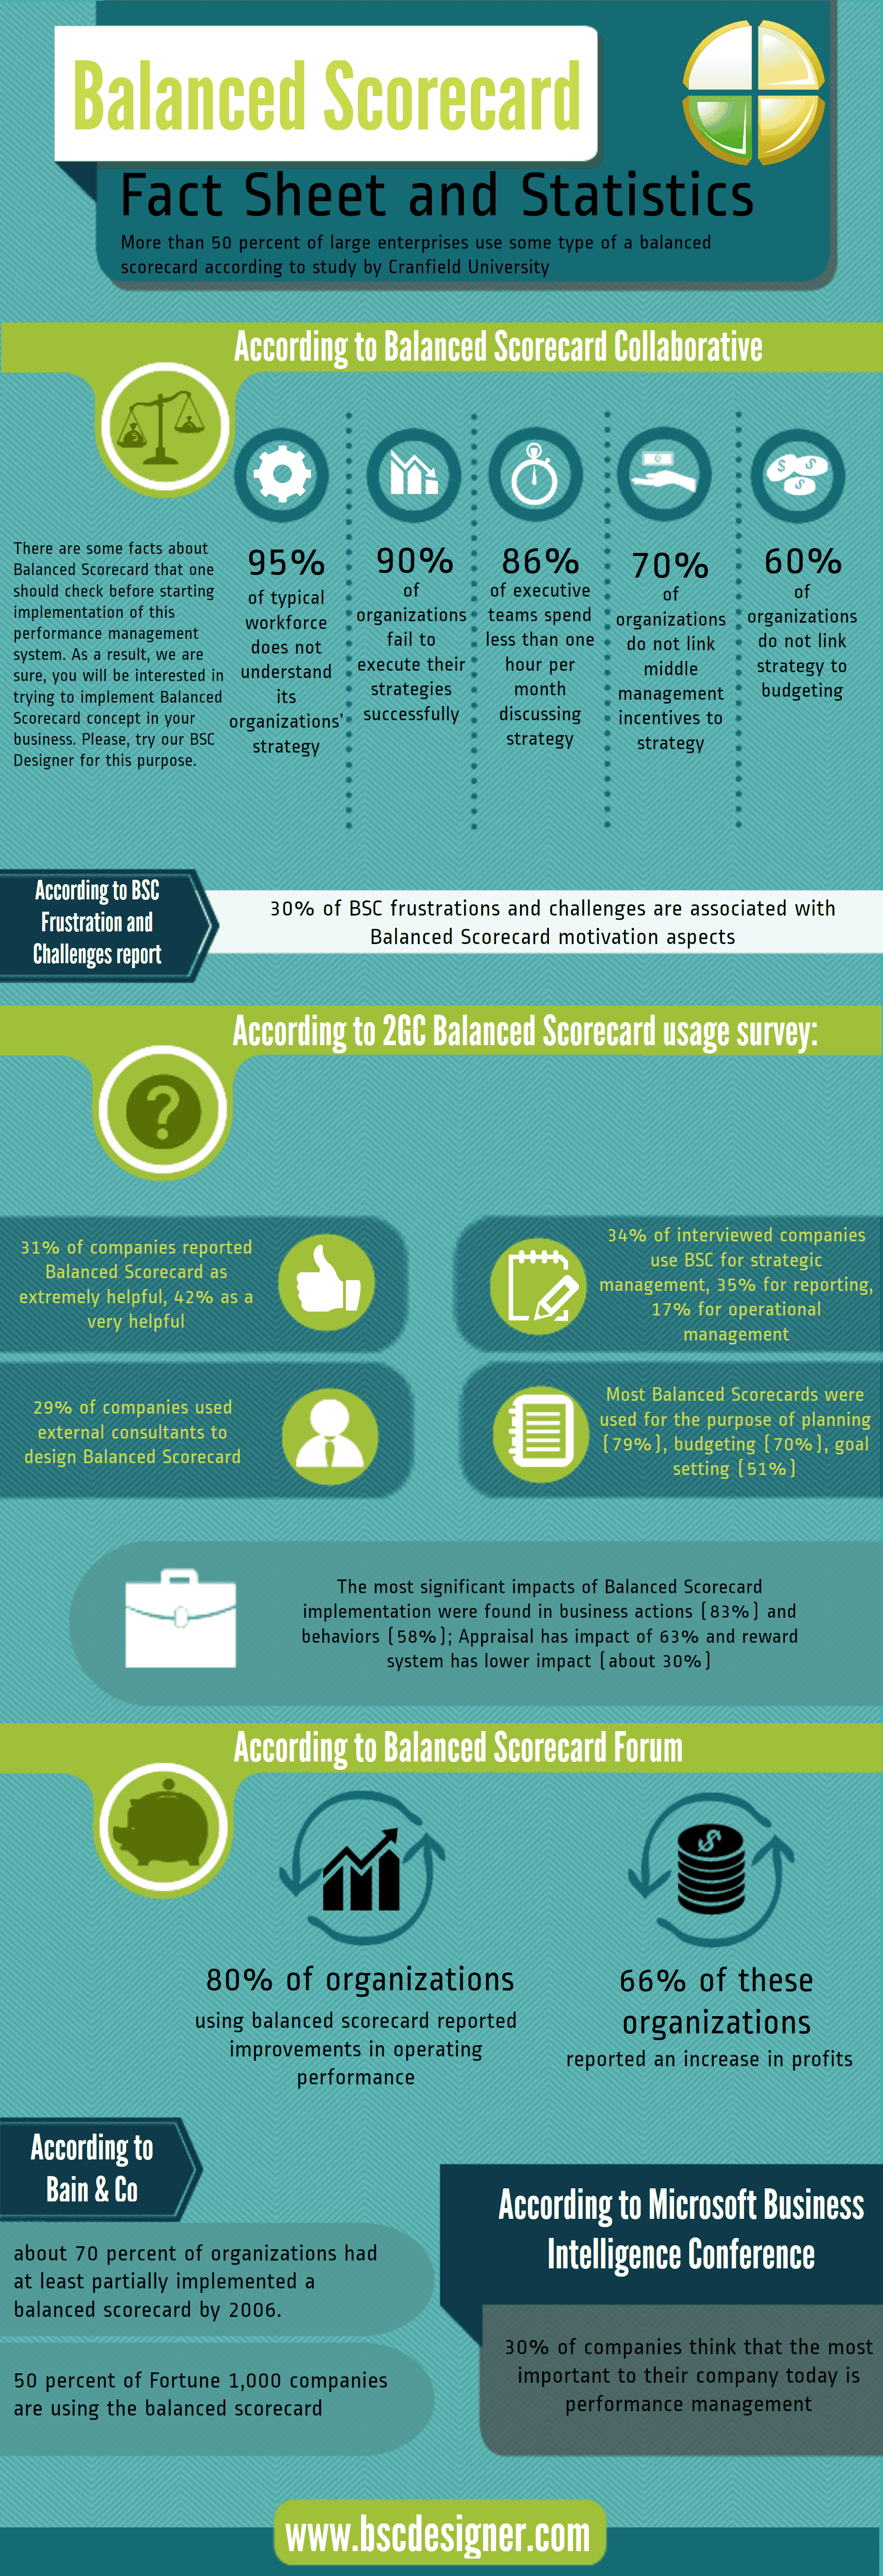 http://www.bscdesigner.com/info-graphic-for-the-balanced-scorecard-concept.htm